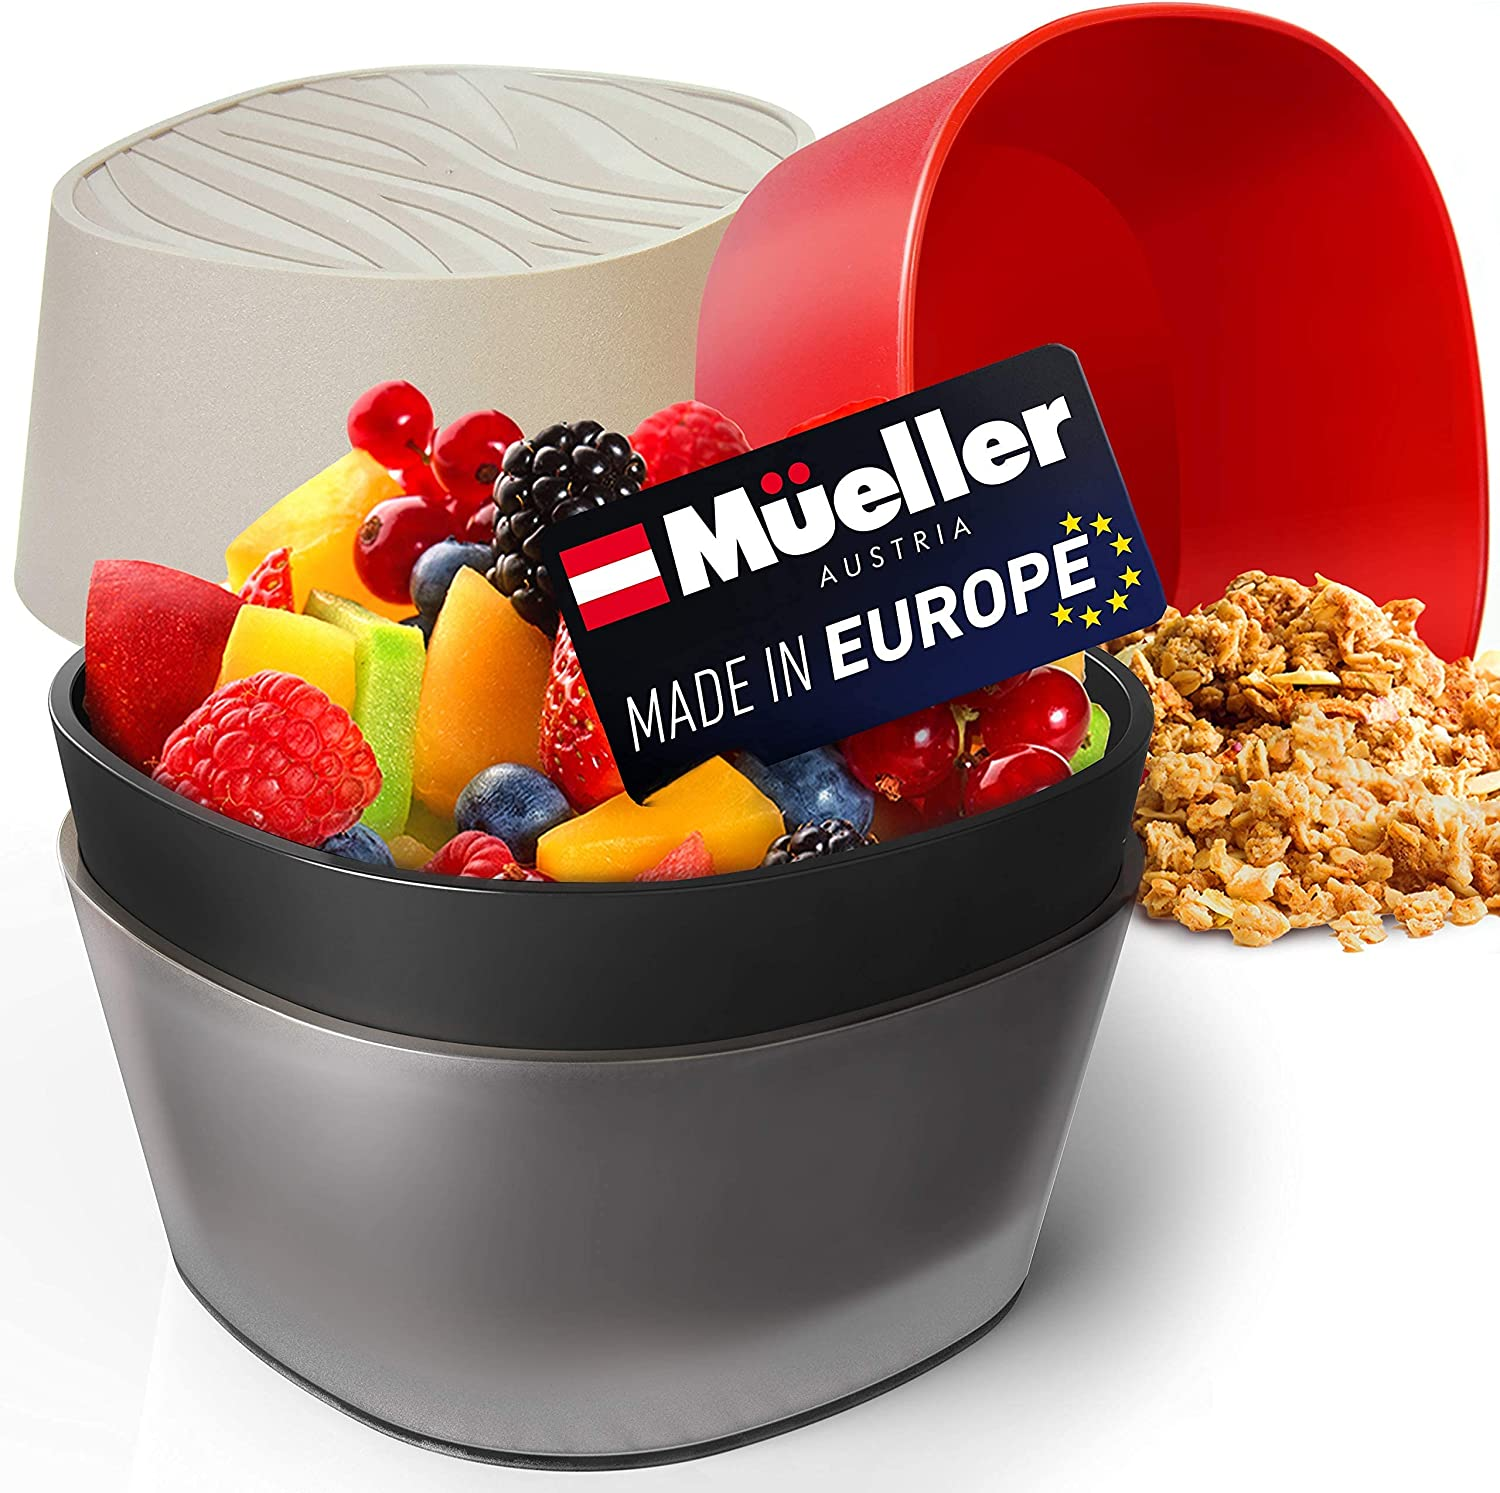 Mueller Max 81% OFF Snack Bowls Salad gift and Rice of 4 European Mad Set